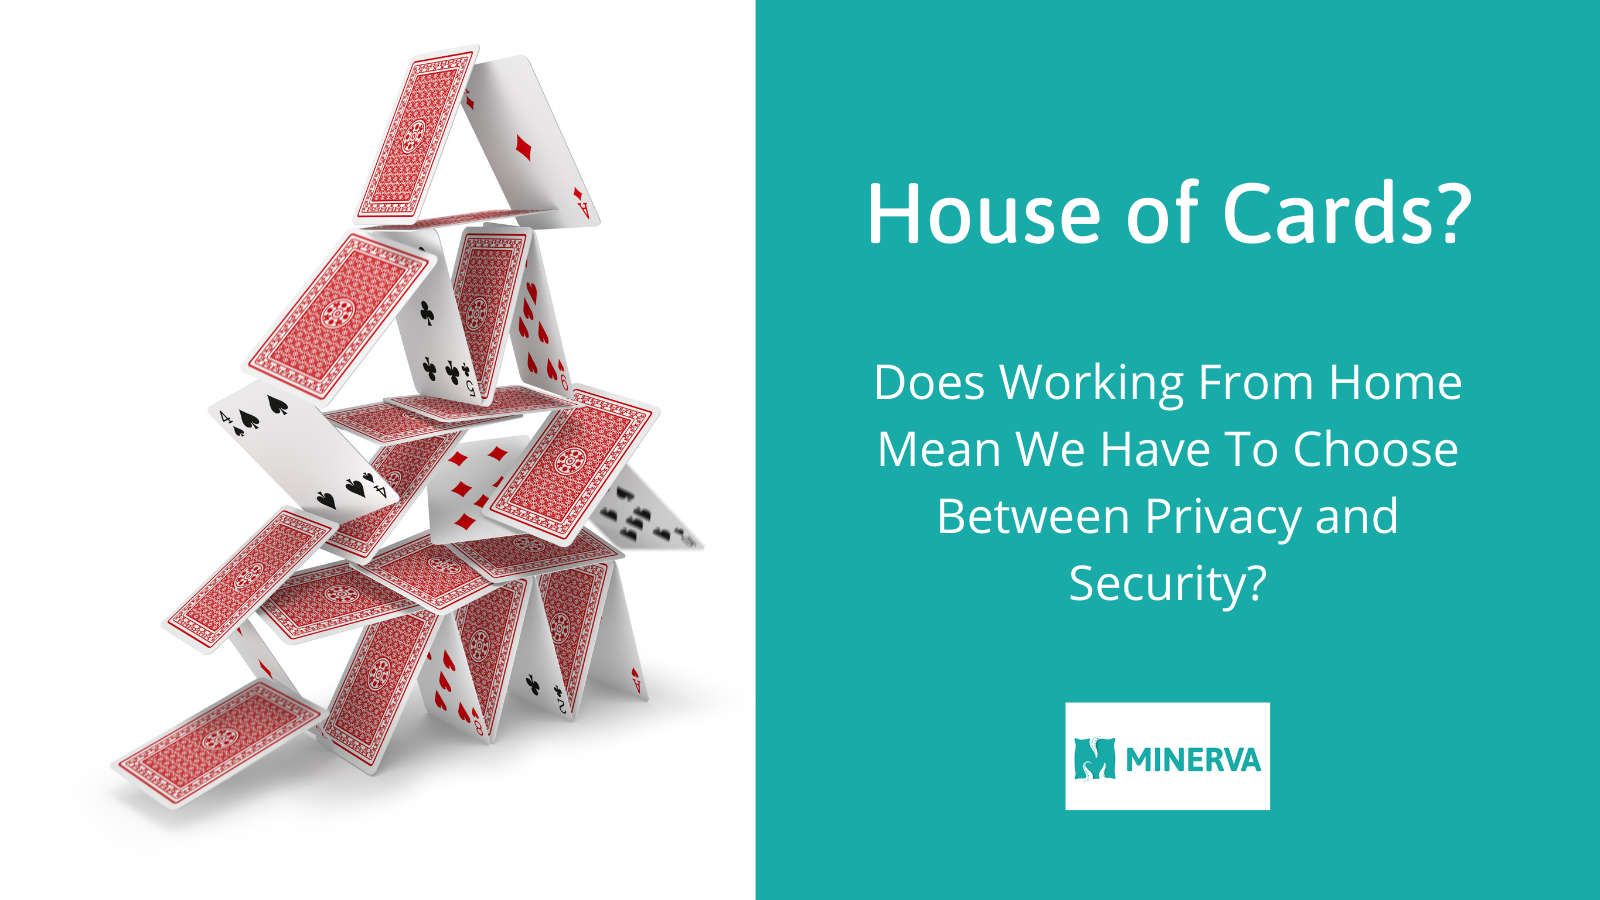 House of Cards: Does WFH Mean We Have to Choose Between Privacy and Security?